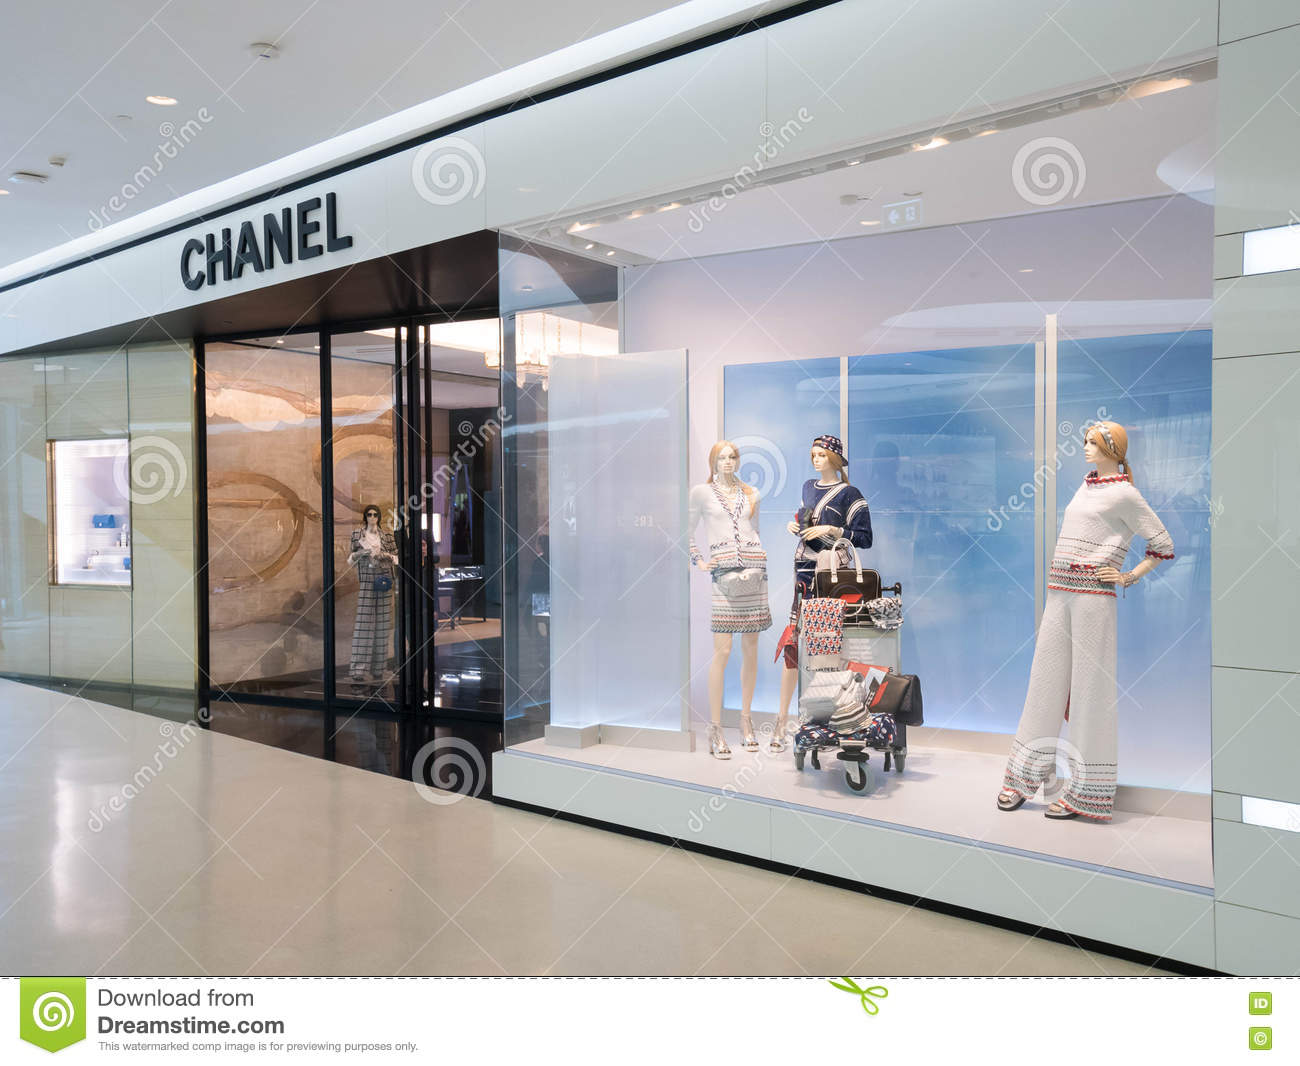 Chanel Fashion Store Editorial Image